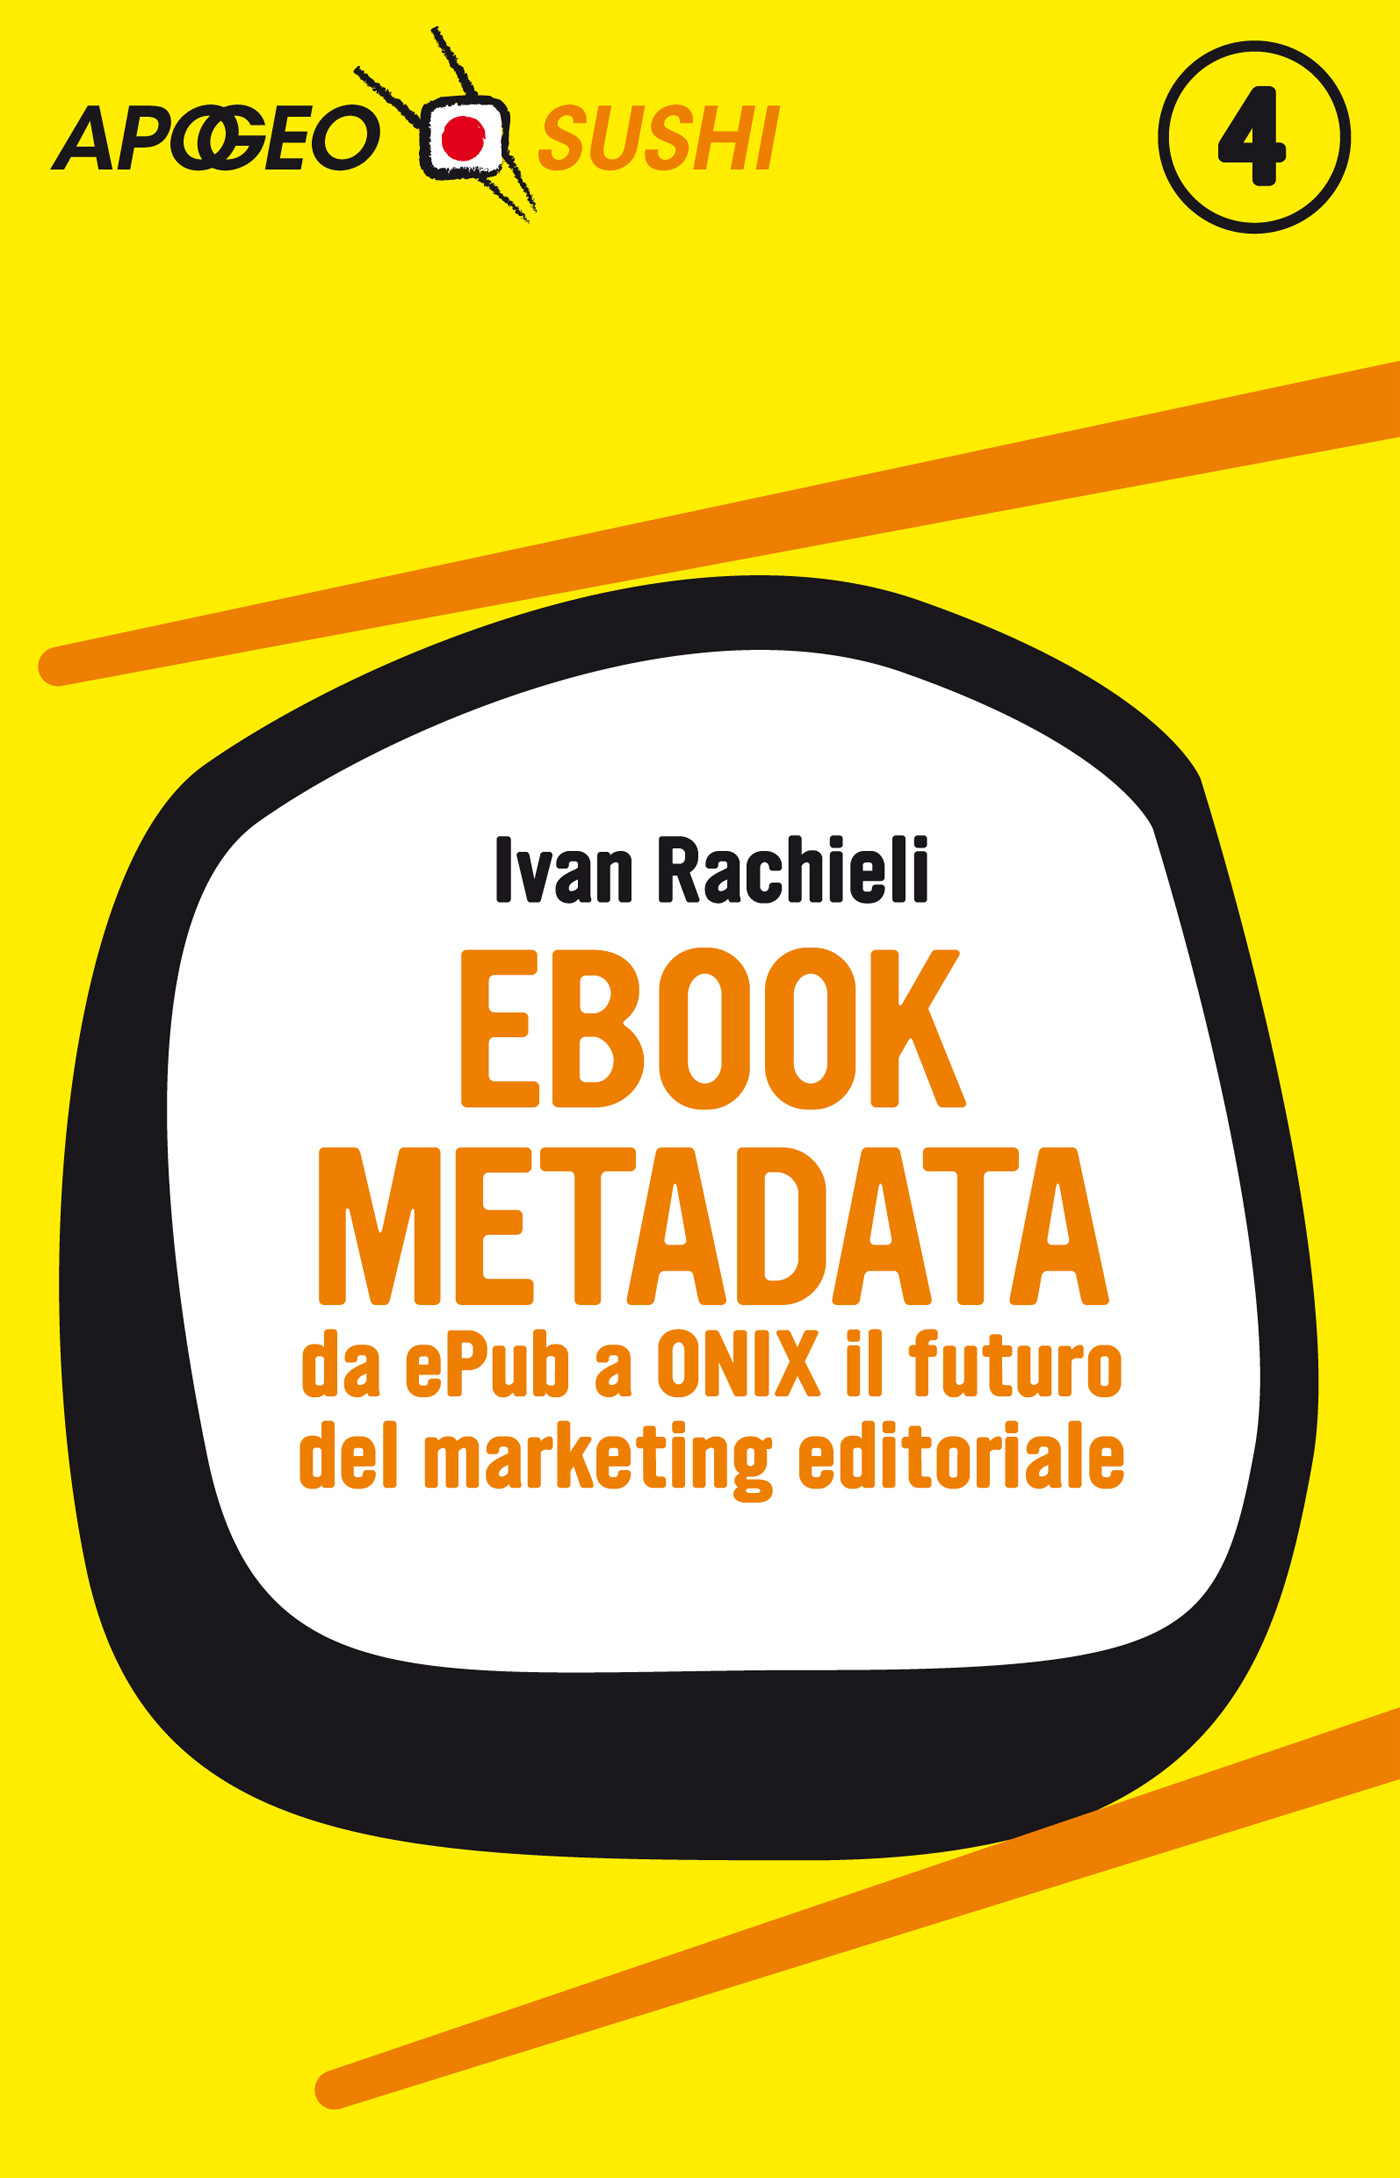 Ebook metadata – Ivan Rachieli